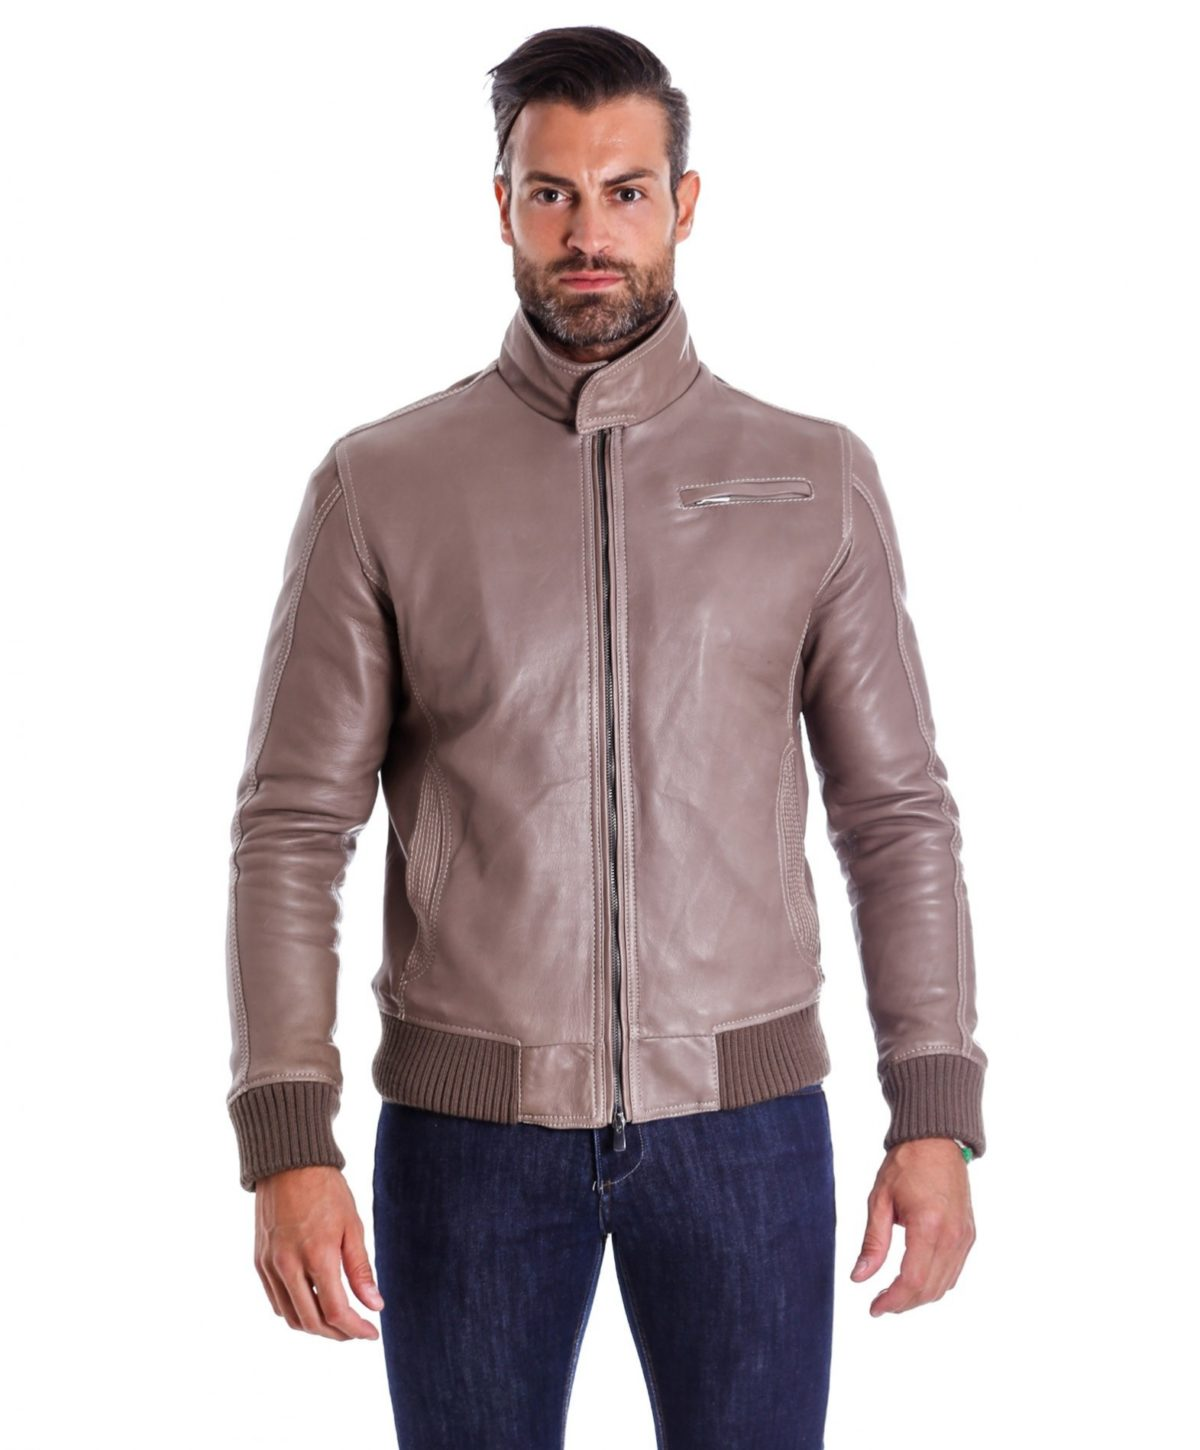 men-s-leather-jacket-genuine-soft-leather-style-bomber-bicolor-wool-cuffs-and-bottom-one-zip-pocket-light-grey-color-thil